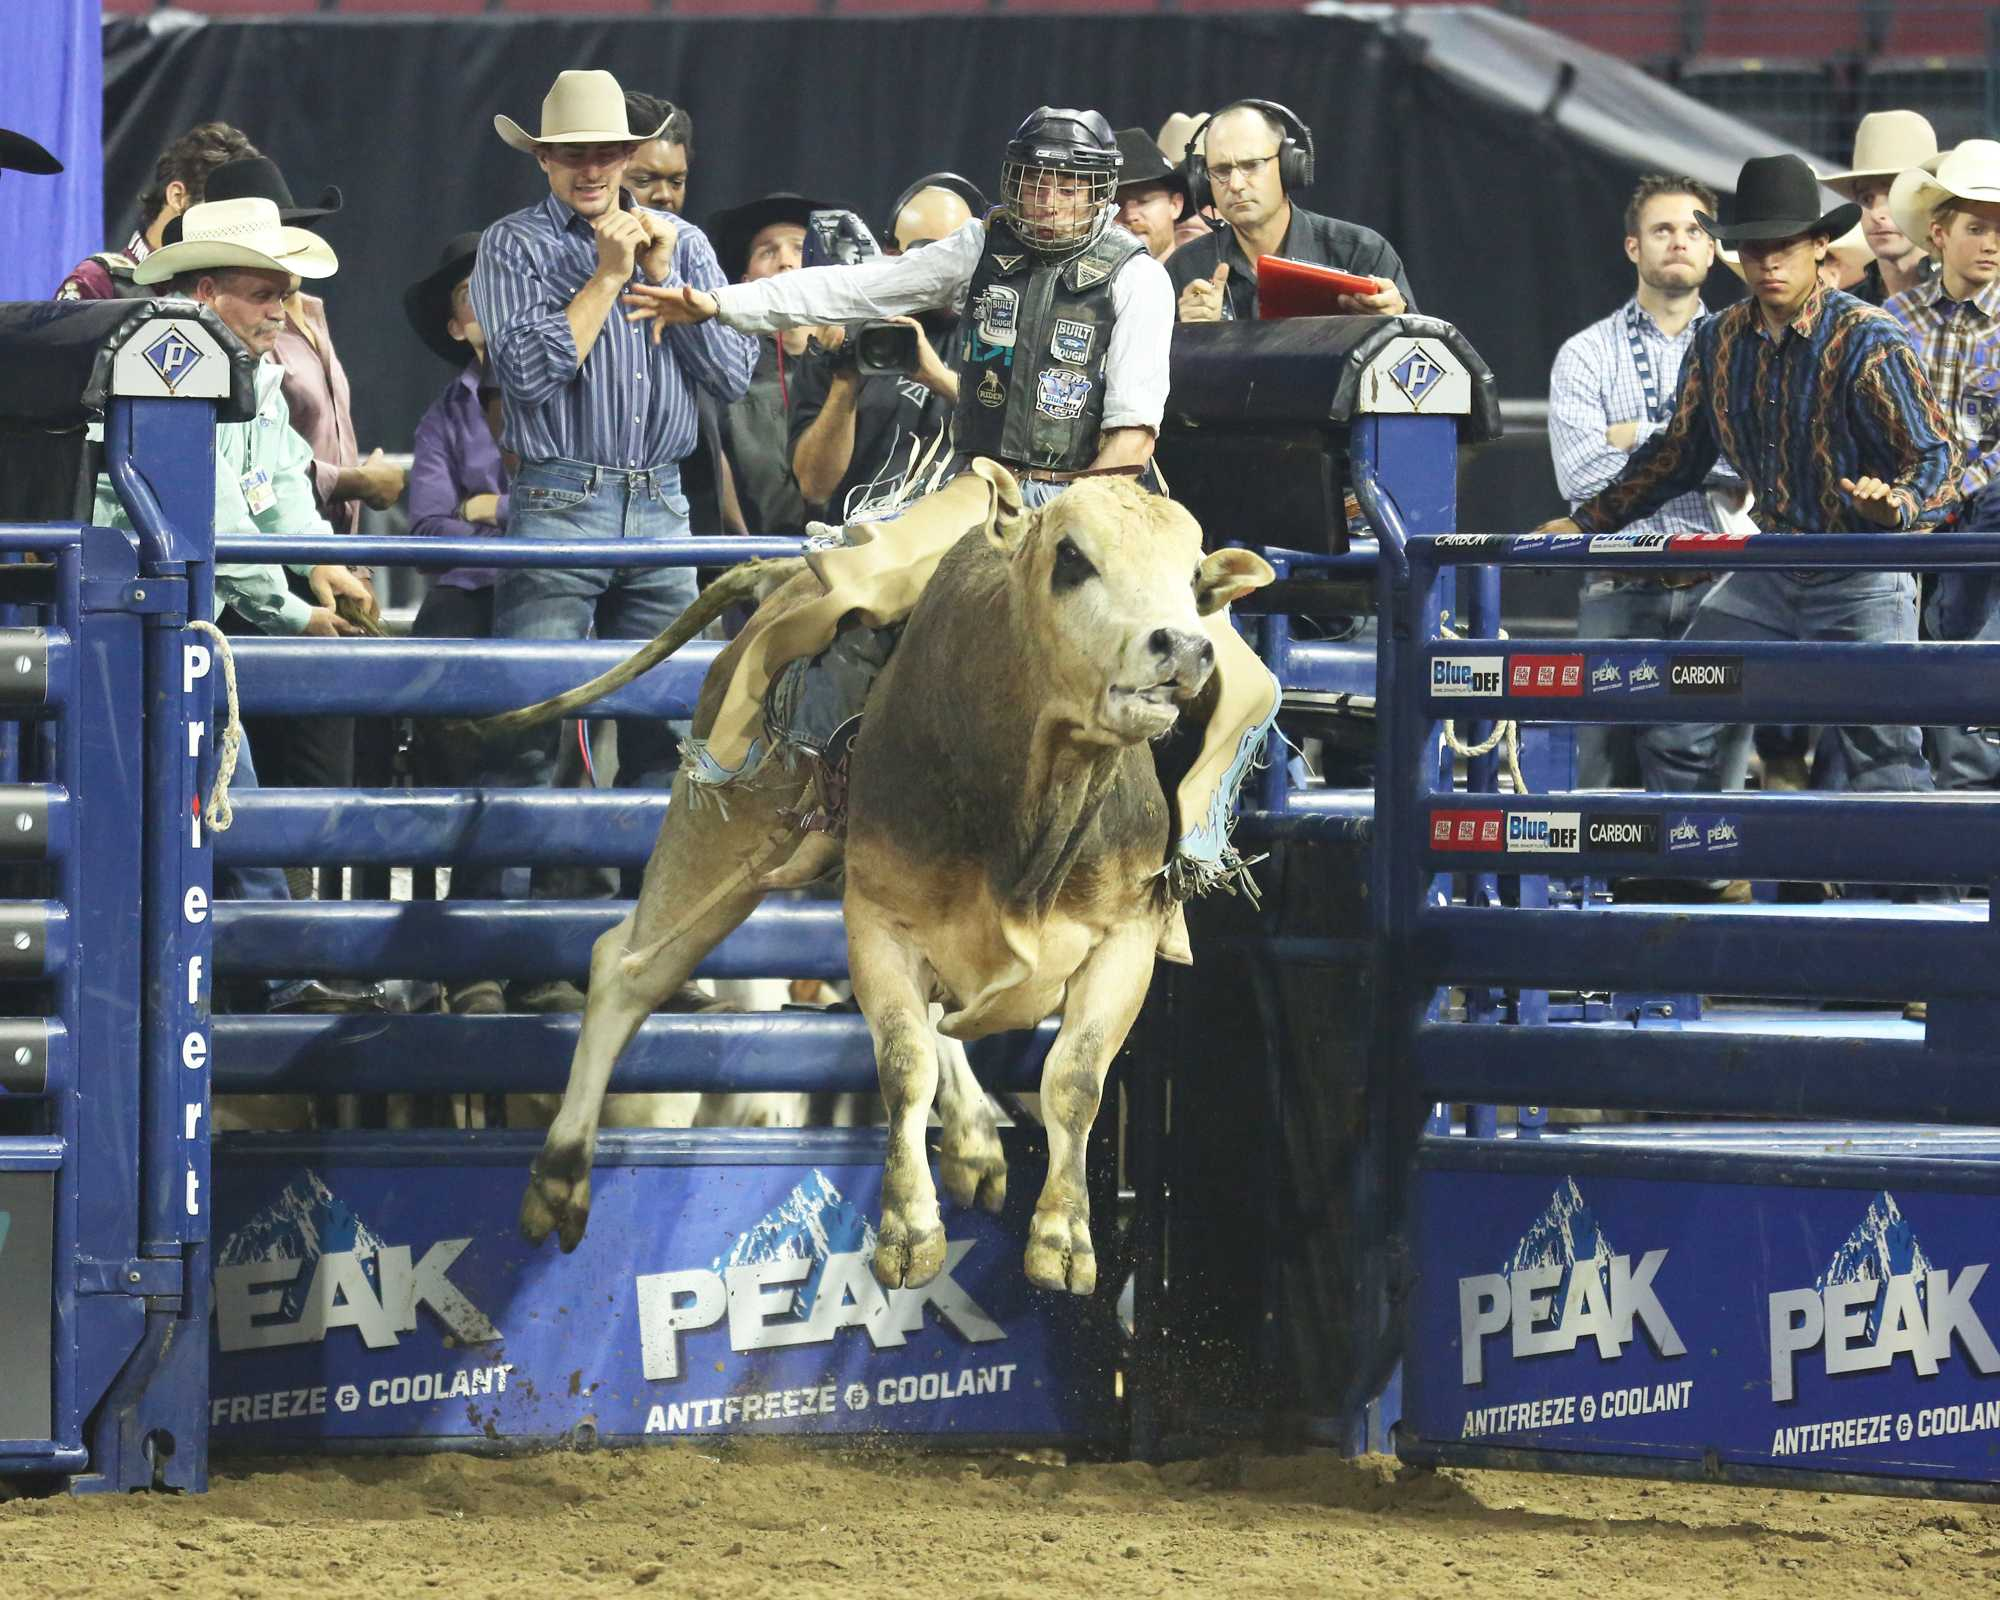 Scottie Knapp holds on tight as the roughly 1500 lb bull goes completely air-born in an attempt to throw the rider.